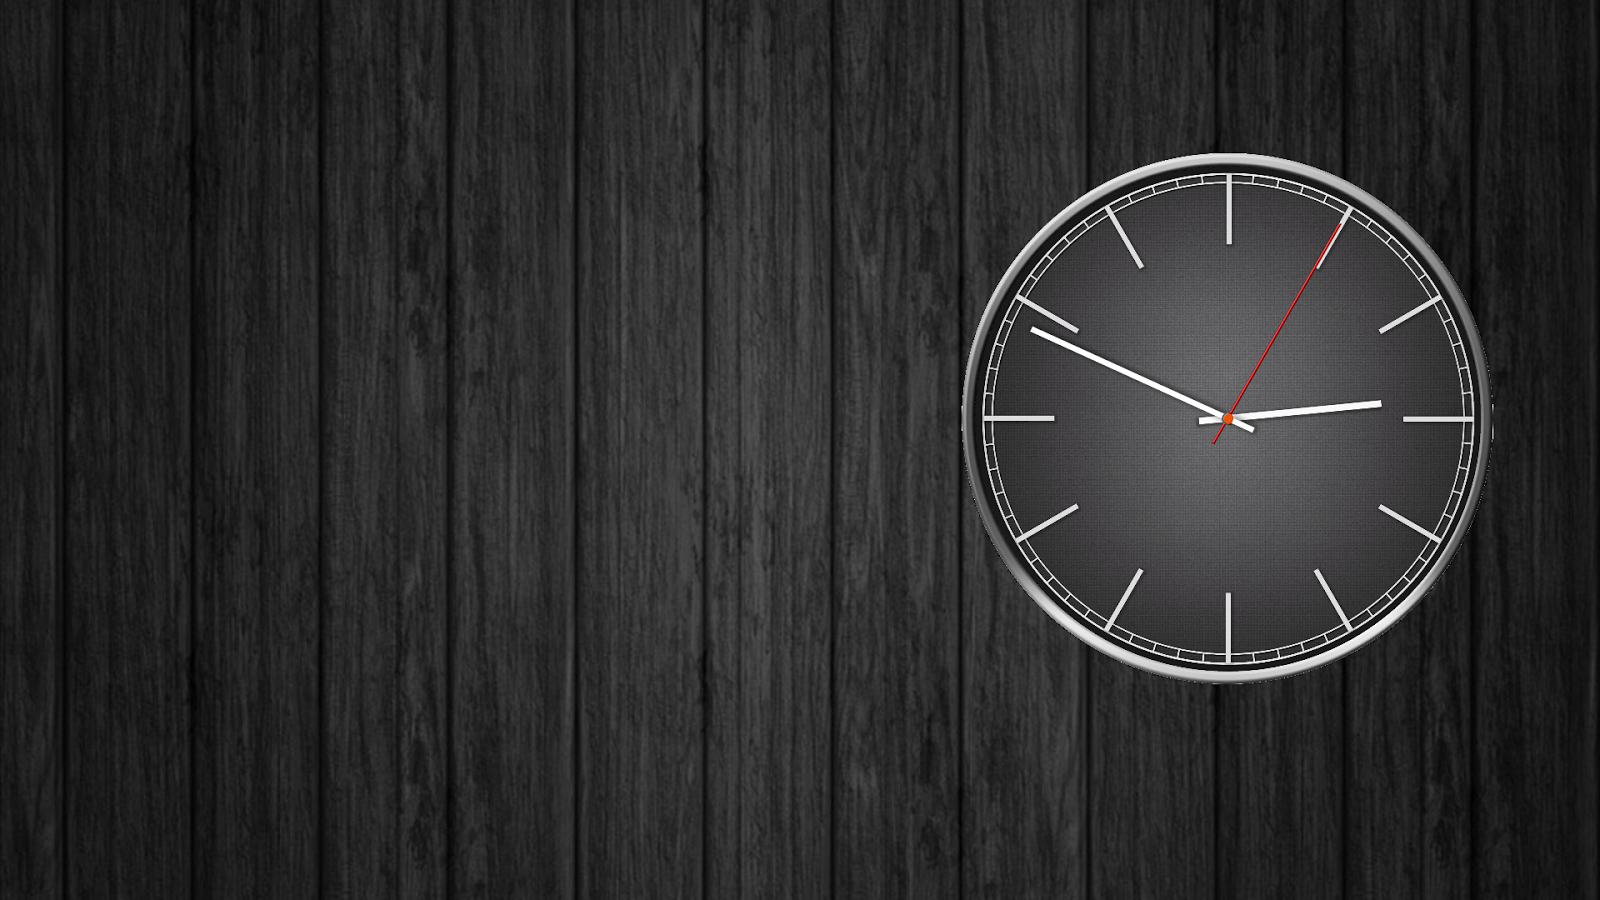 Battery Saving Analog Clocks Live Wallpaper Pro Android Apps on